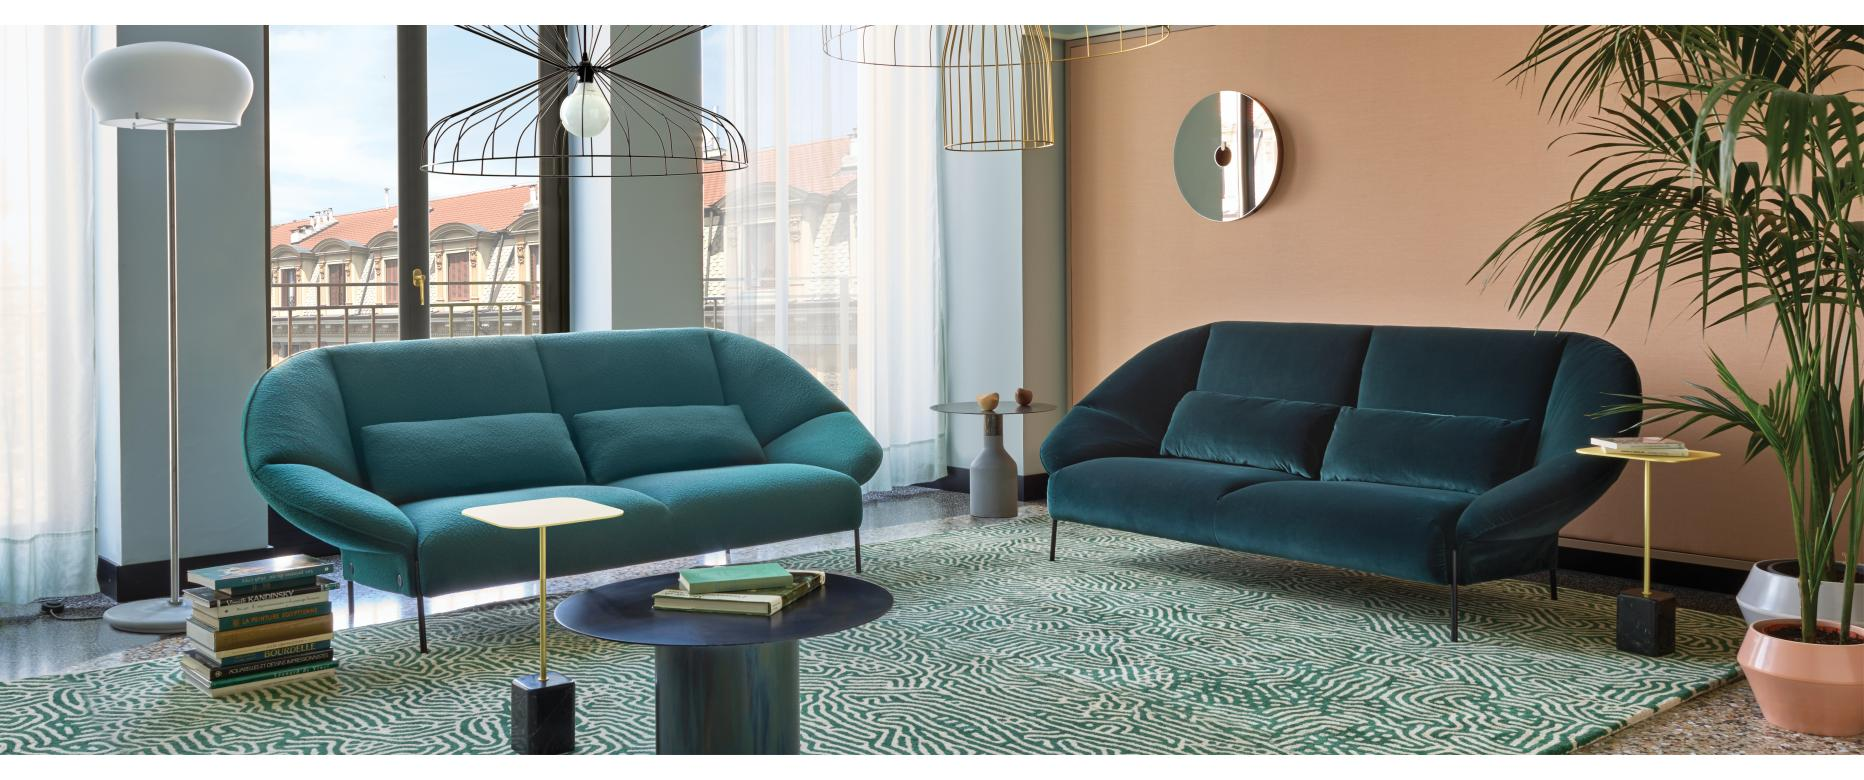 Bettsofa Florida Ligne Roset Official Site Contemporary High End Furniture